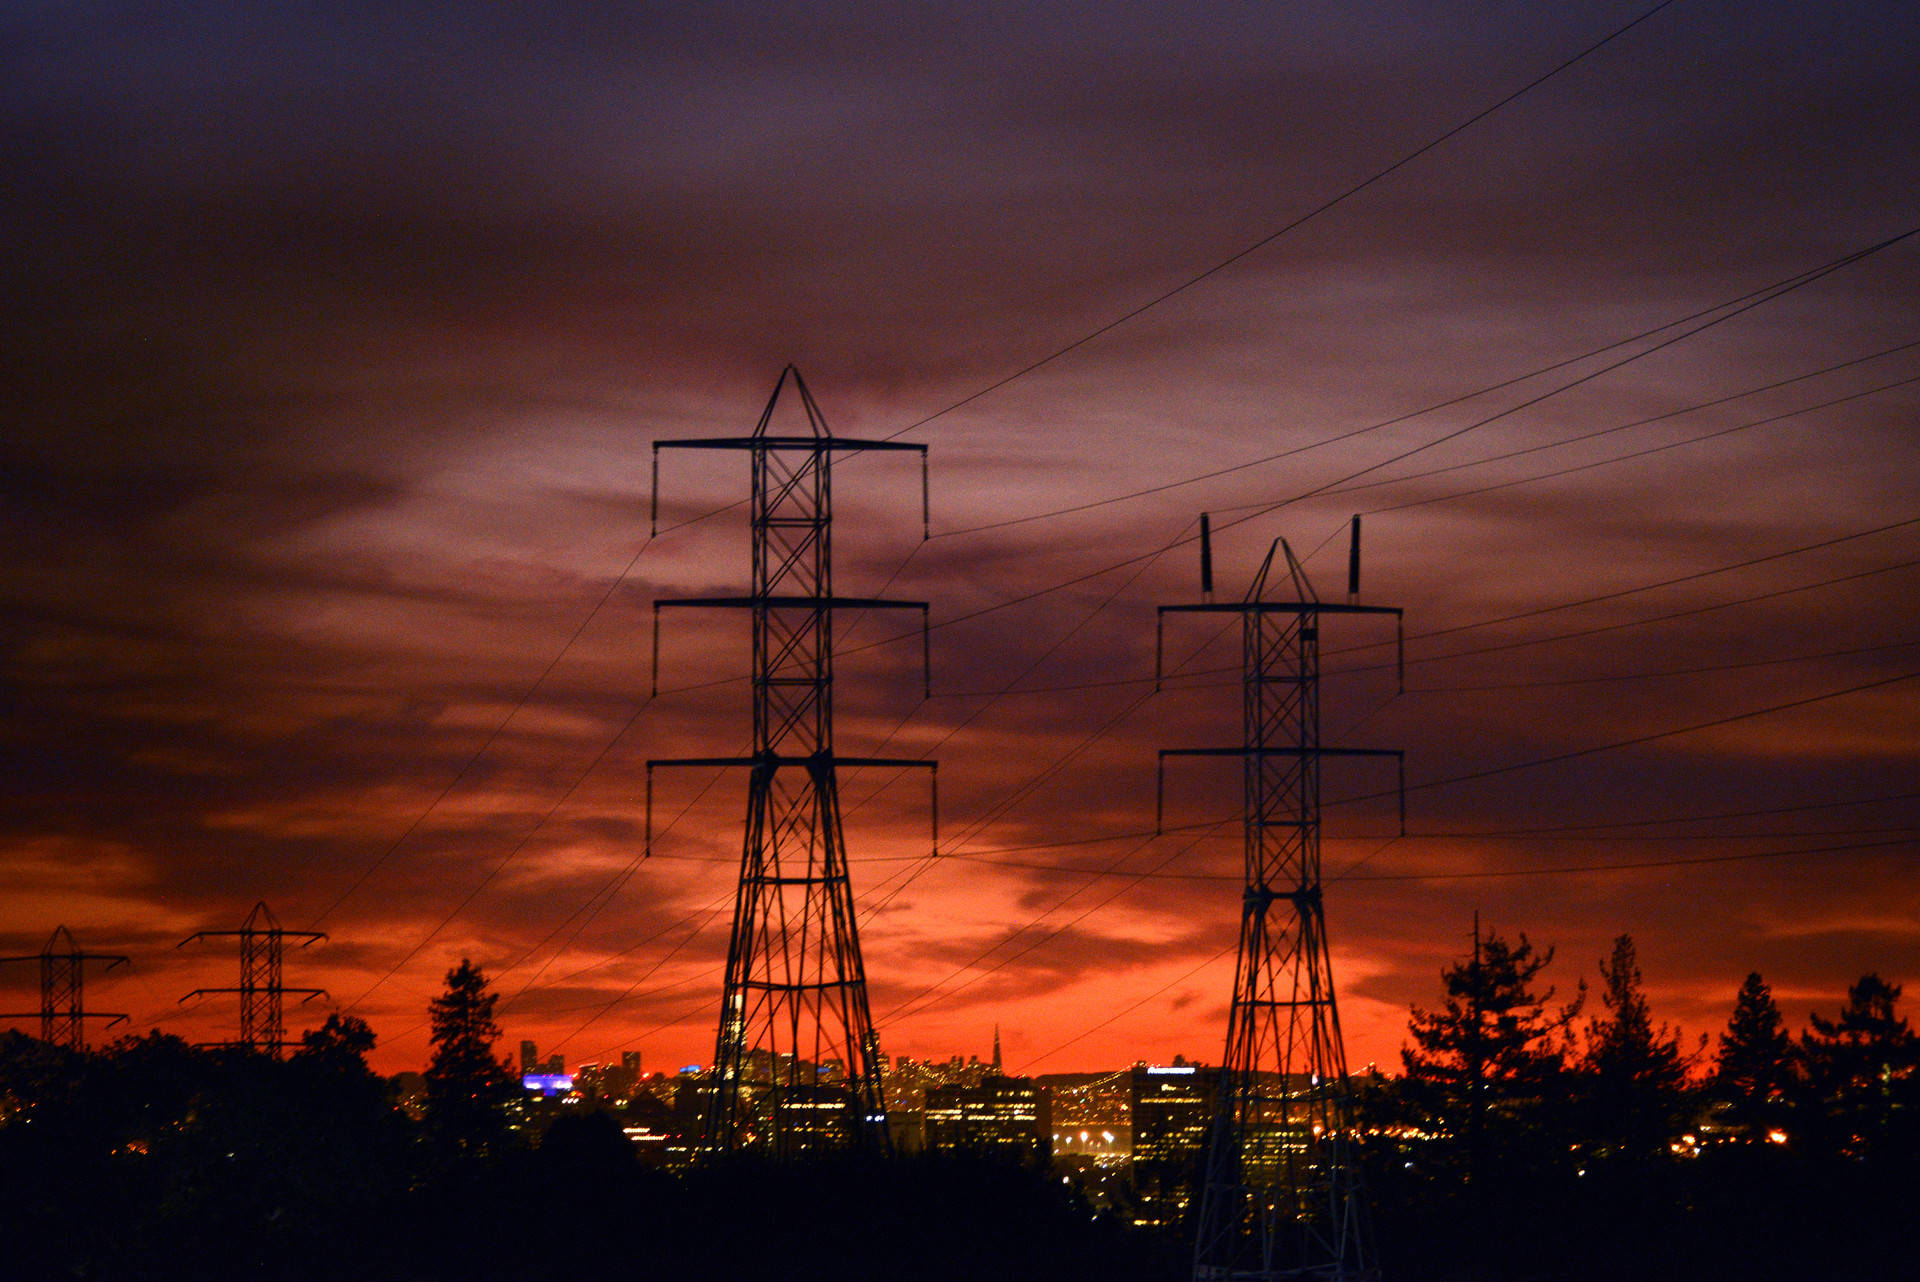 PG&E power lines in Oakland during an unprecedented power cut by the utility to a large swath of Northern and Central California on Oct. 11, 2019. Stephanie Lister/KQED